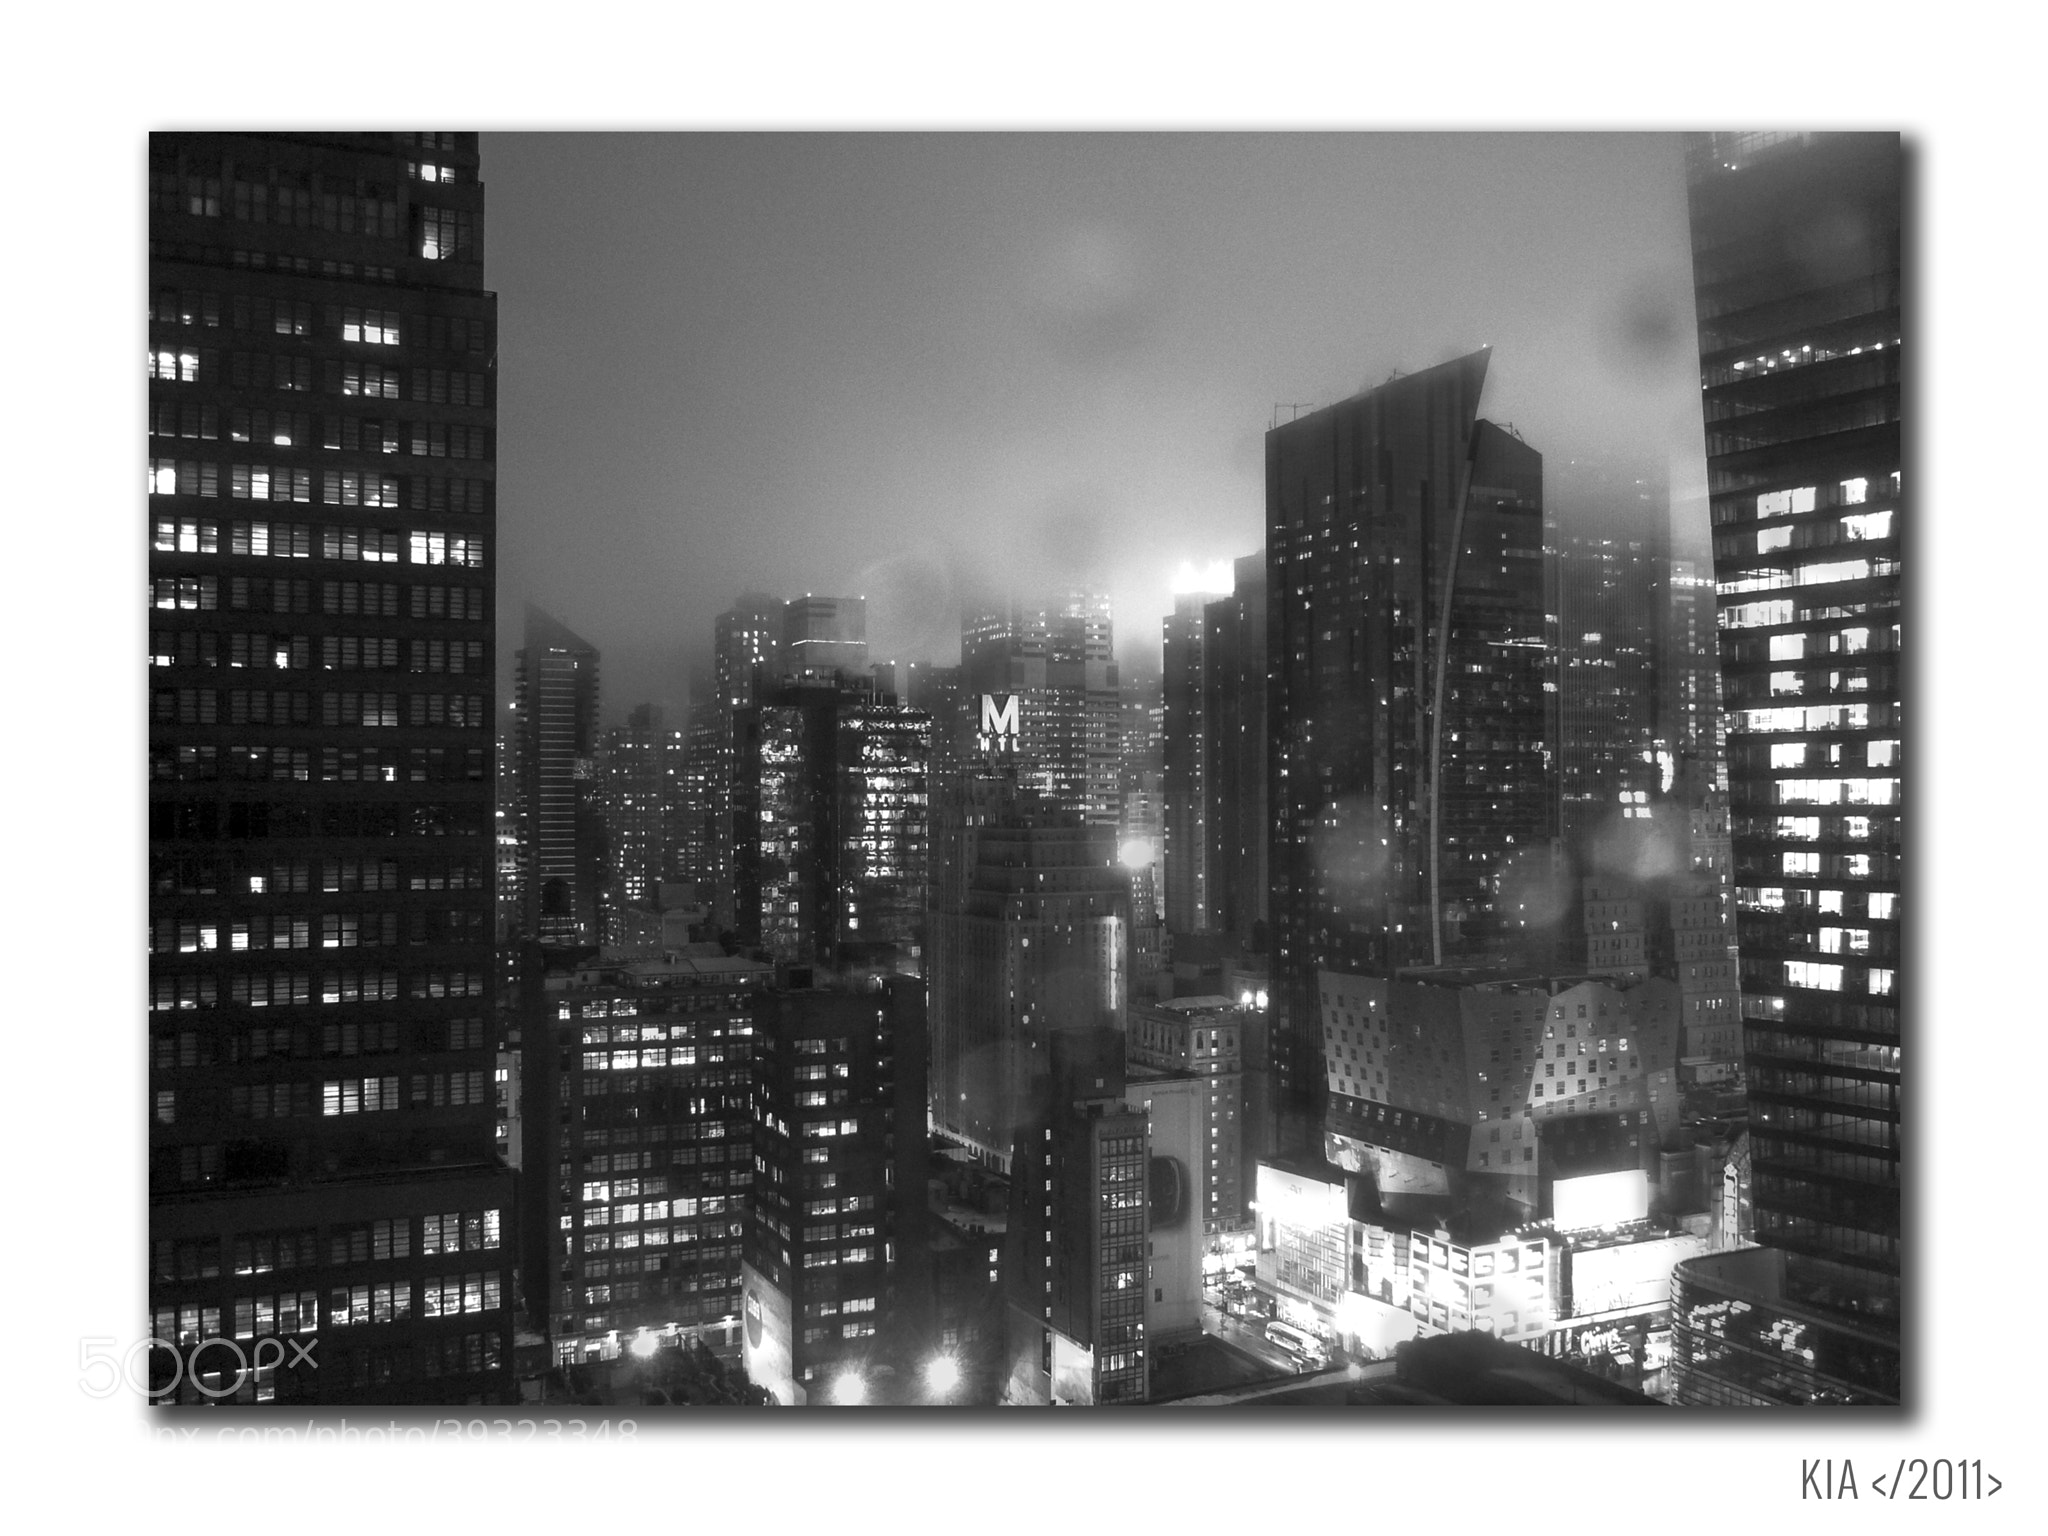 Photograph Rainy night in Manhattan by Kiara Lovisetto on 500px